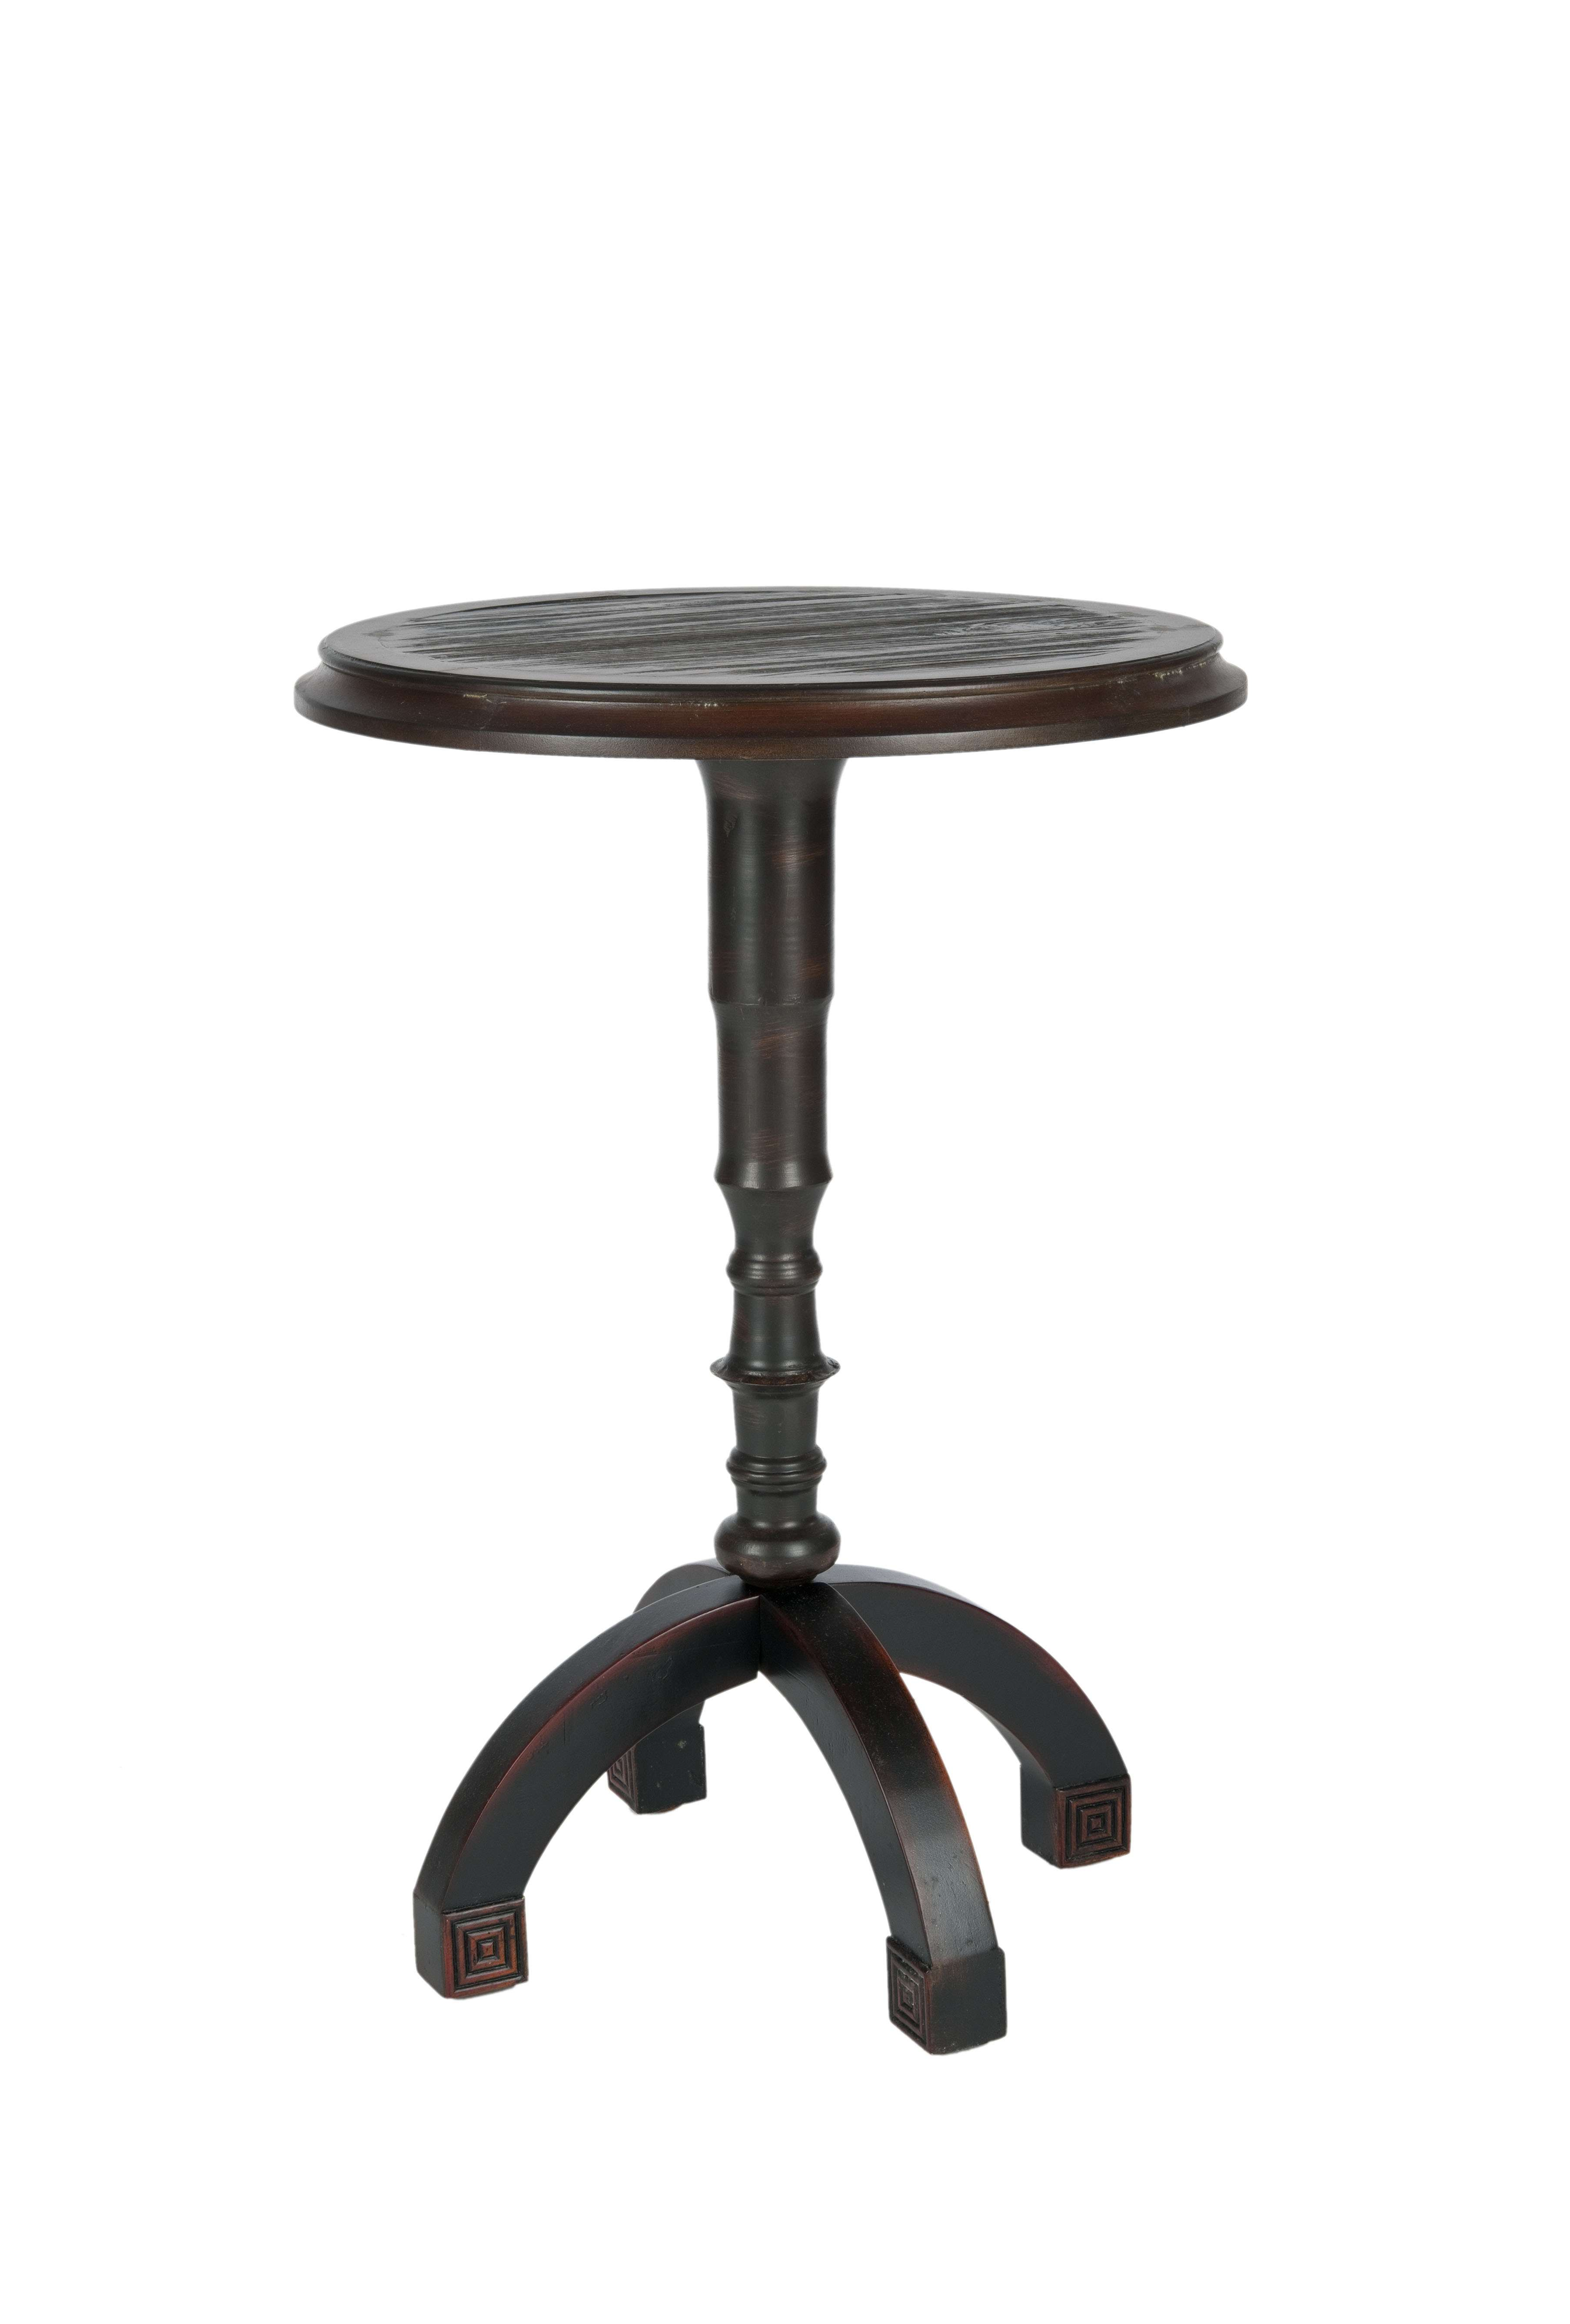 safavieh barnaby distressed java round top accent table reviews white wicker and chairs black bar height sun umbrella base dark wood side brielle furniture fretwork coffee